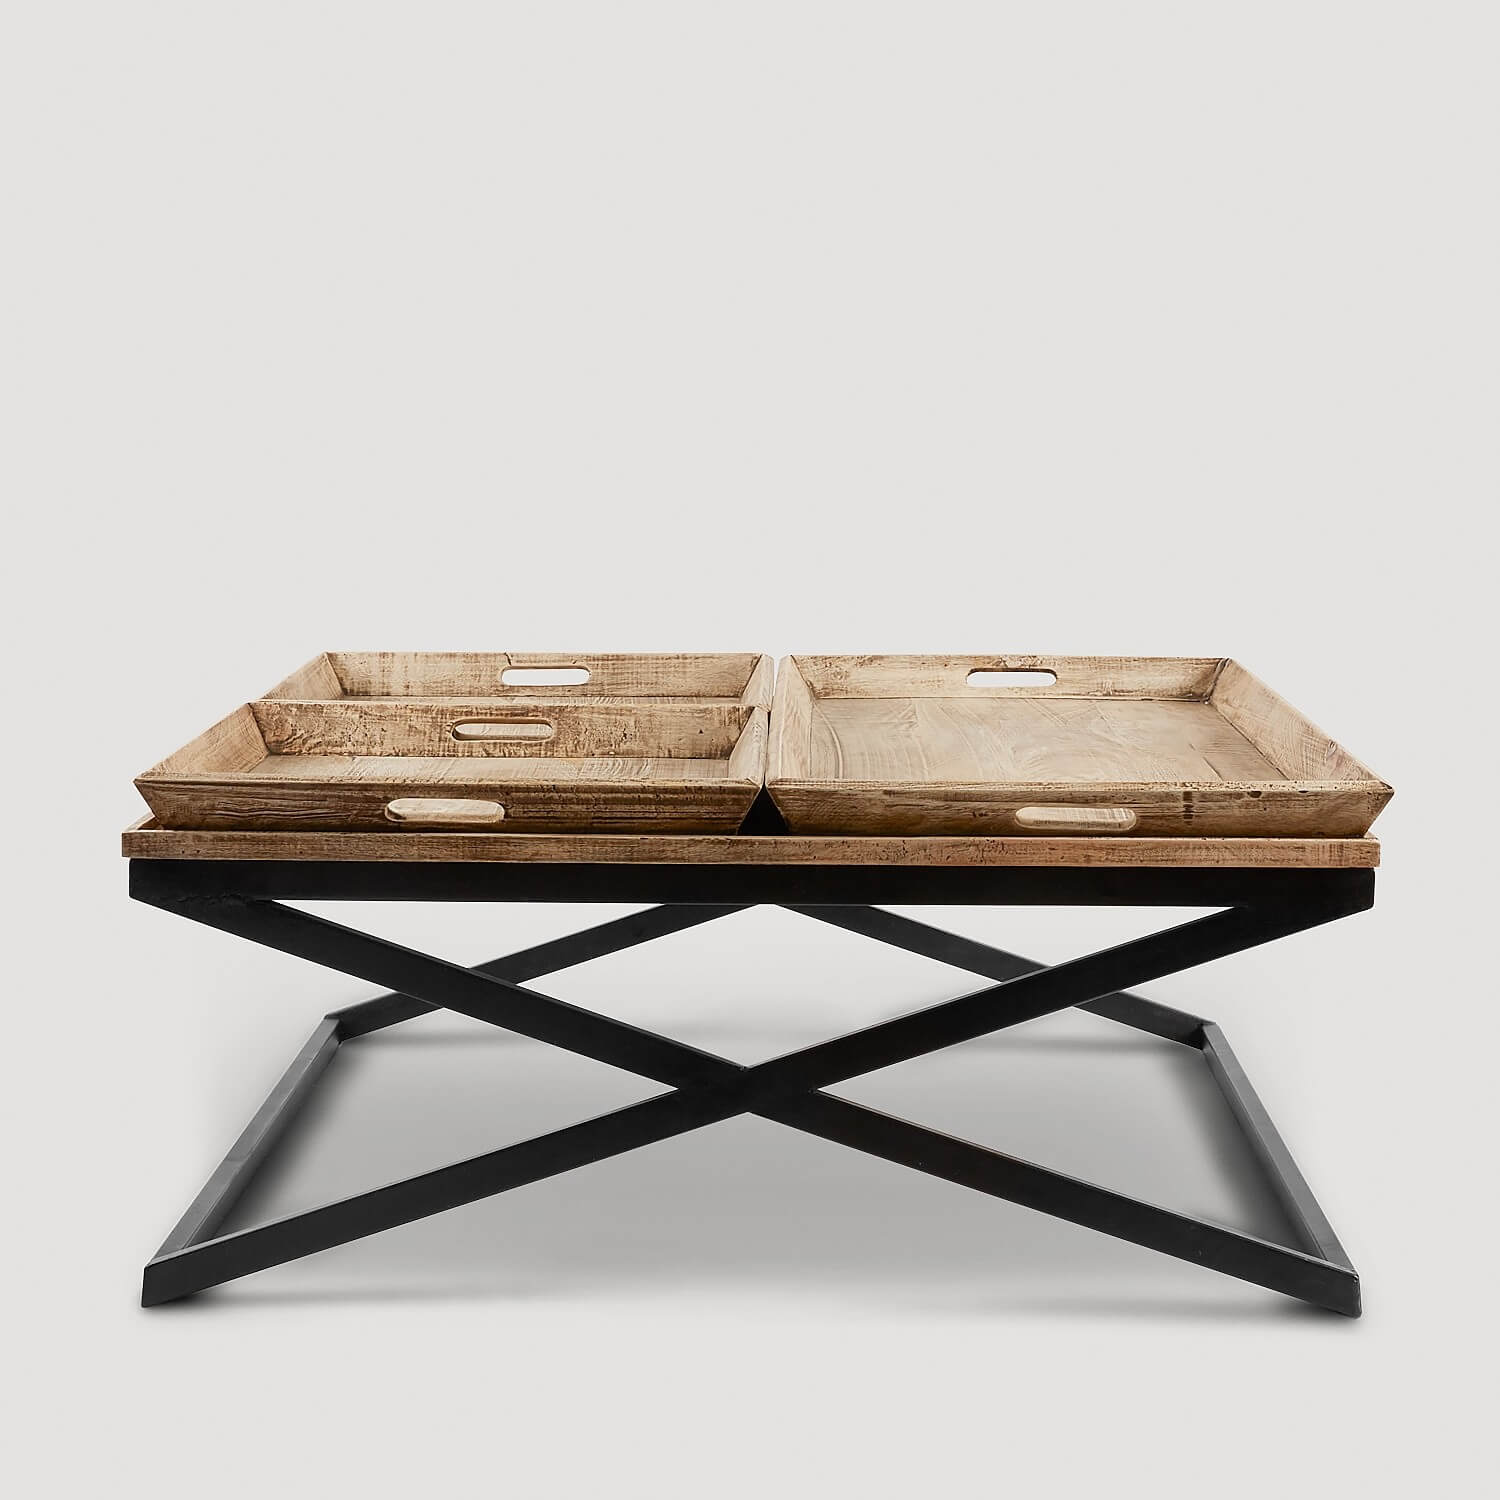 Swazi Coffee Table with Tray